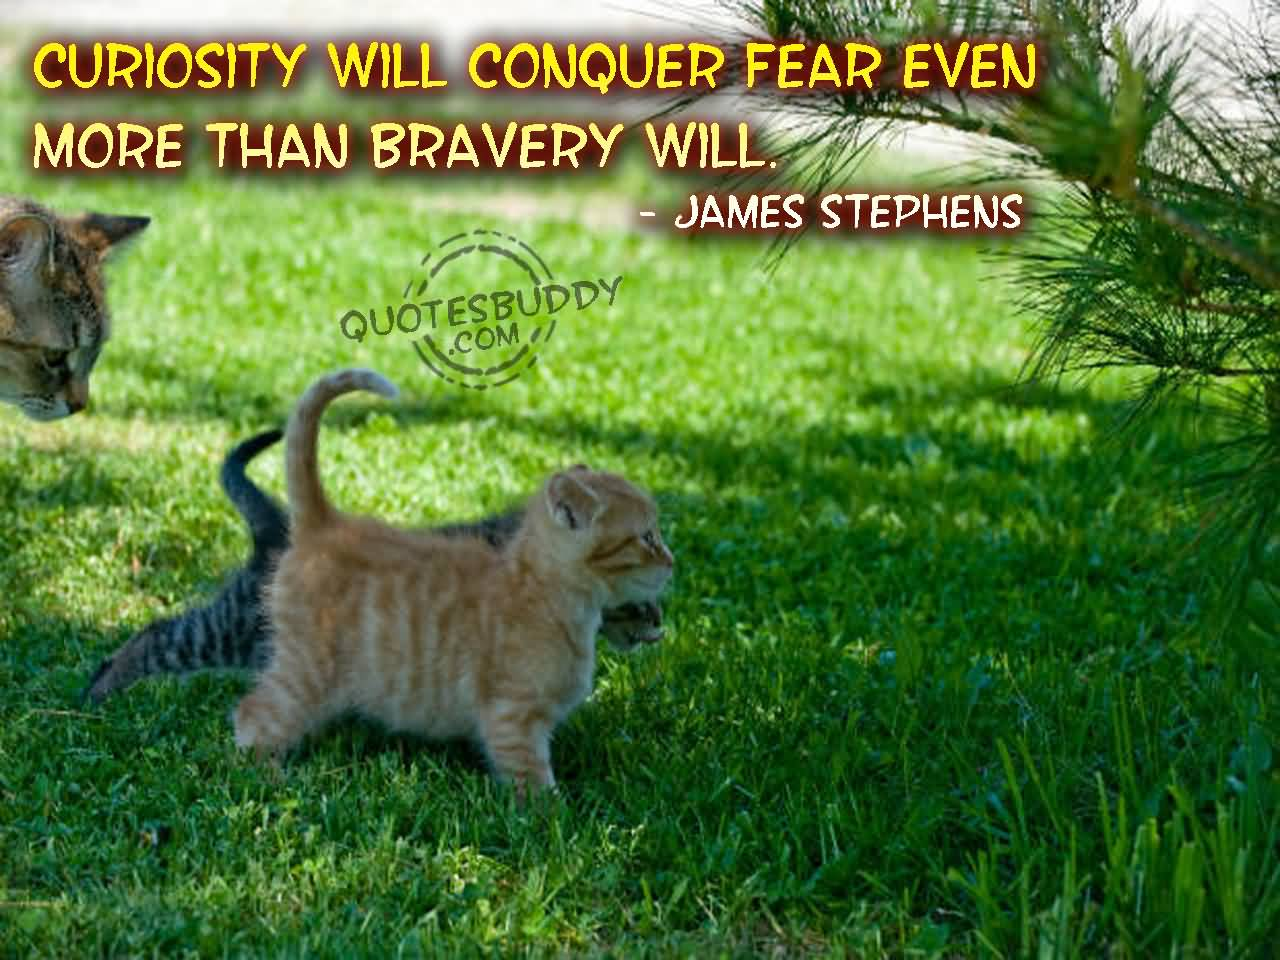 Curiosity Quotes Curiosity Will Conquer Fear Even More Than Bravery Will.